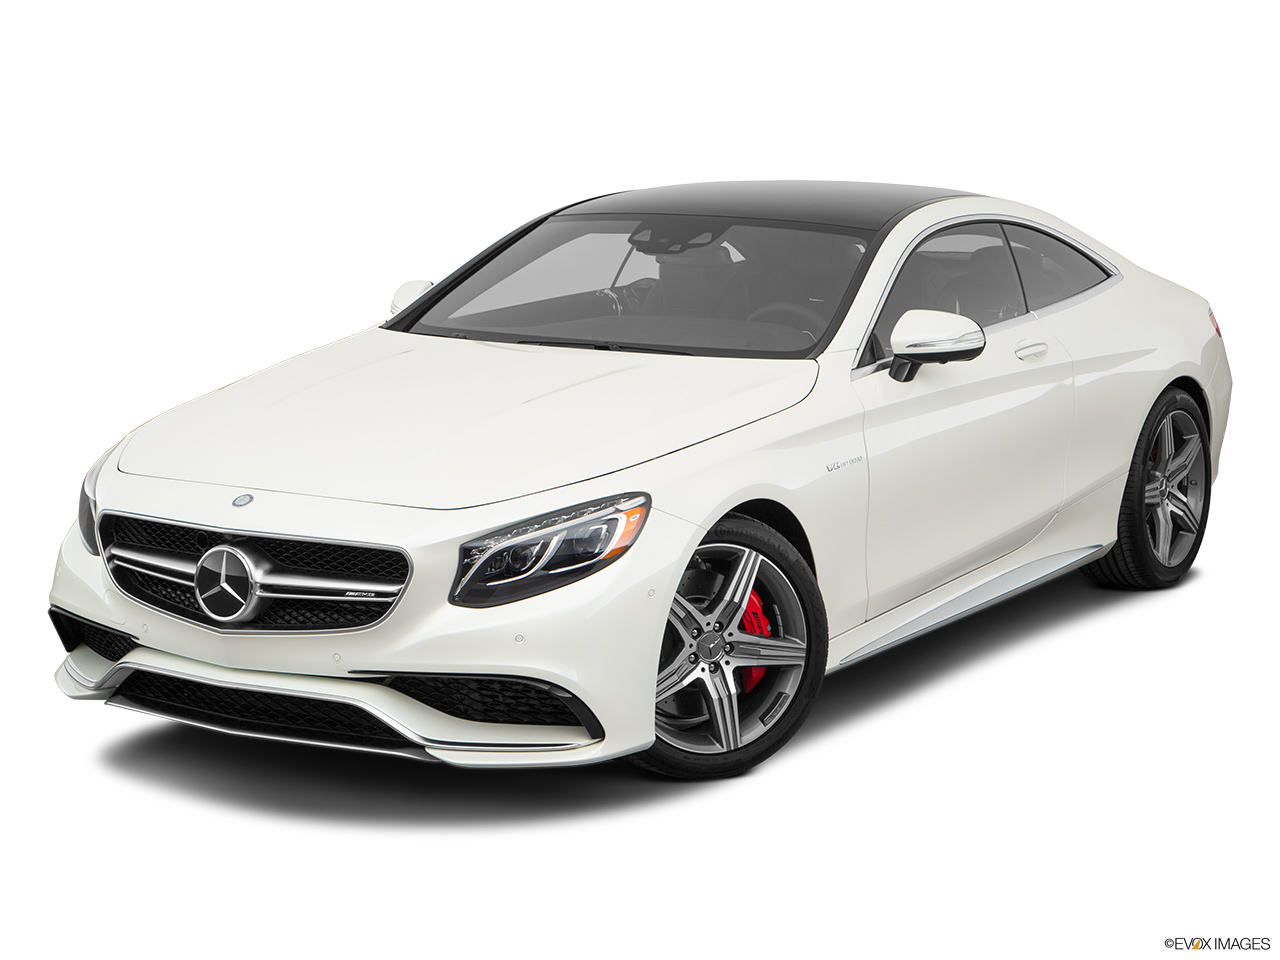 Mercedes benz s 63 amg coupe price in uae new mercedes for Mercedes benz amg hatchback price